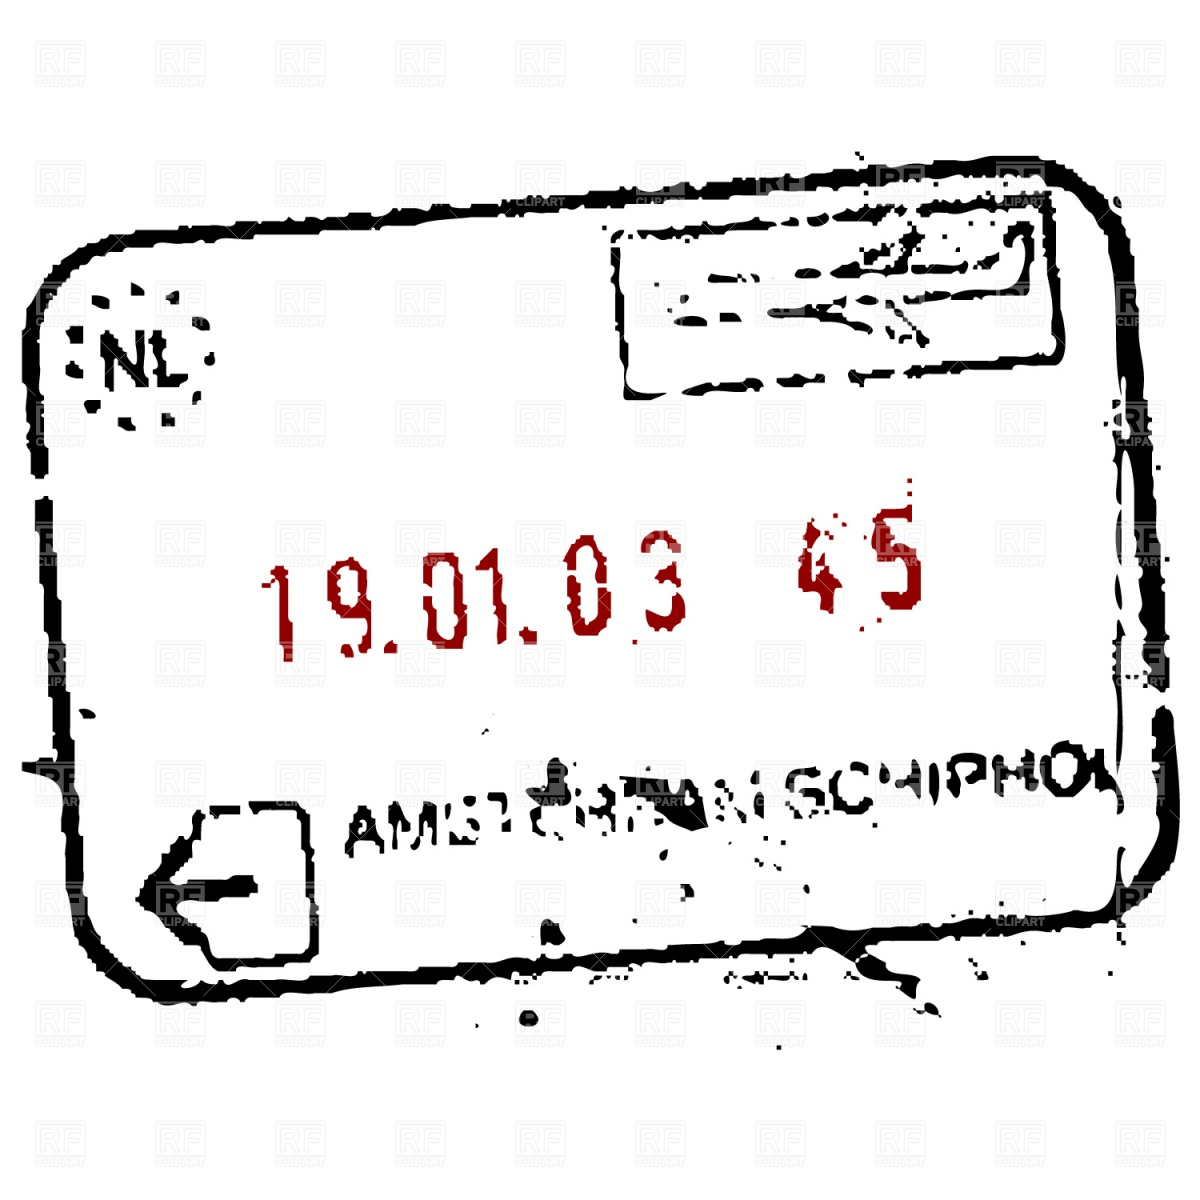 Customs at airport signage clipart stamp passport clipart royalty free stock Passport Stamp Vector at GetDrawings.com | Free for personal ... clipart royalty free stock